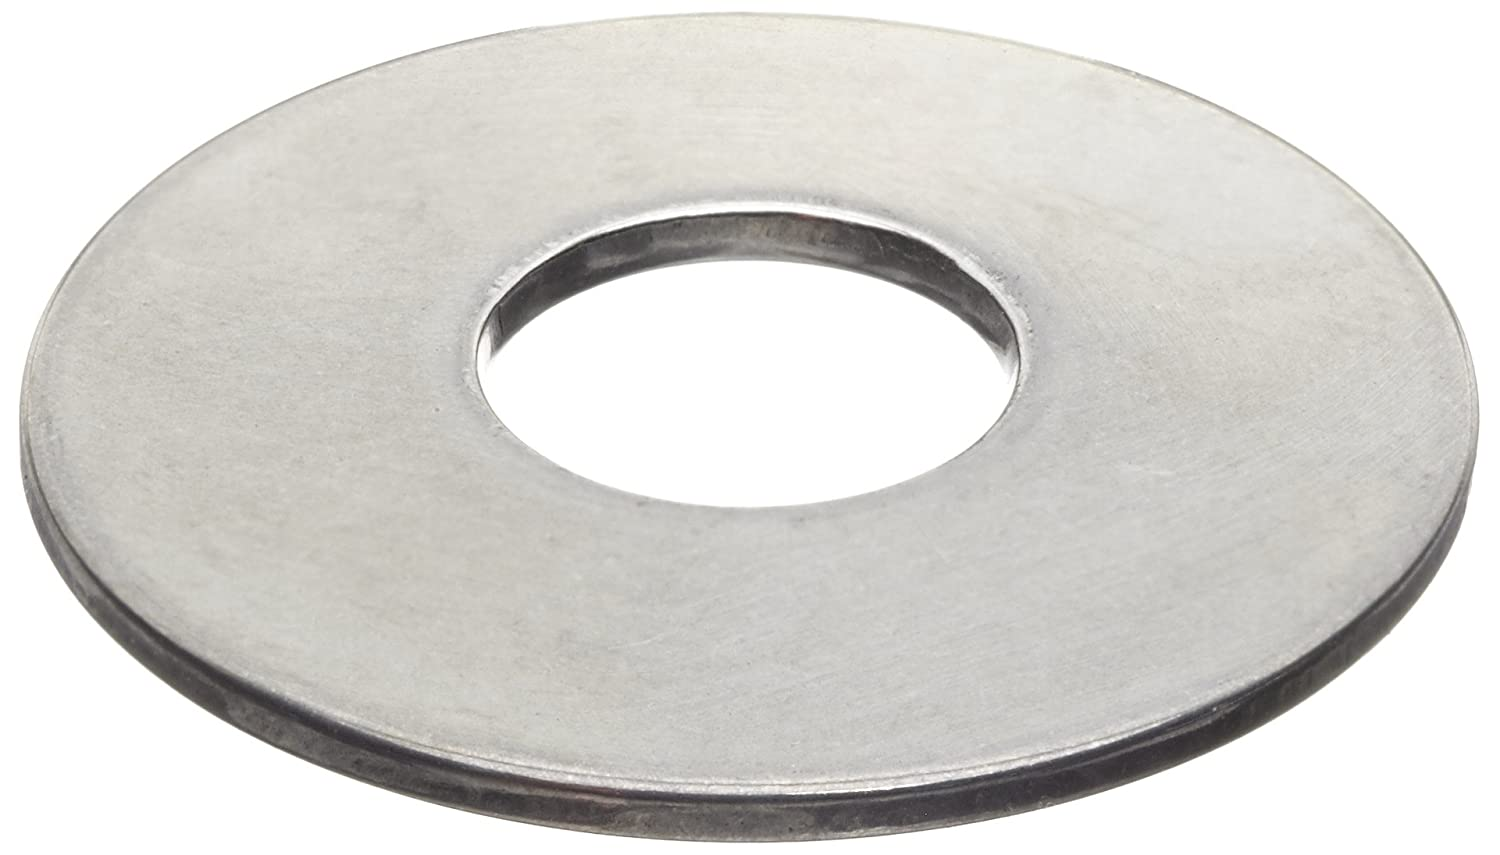 0.937 inches Outside Diameter 0.056 inches Compressed Height Associated Spring Raymond B0937045S 0.317 inches Inner Diameter 302 Stainless Steel Belleville Spring Washers 0.067 inches Free Height Pack of 10 Load 218 foot/_pounds Max